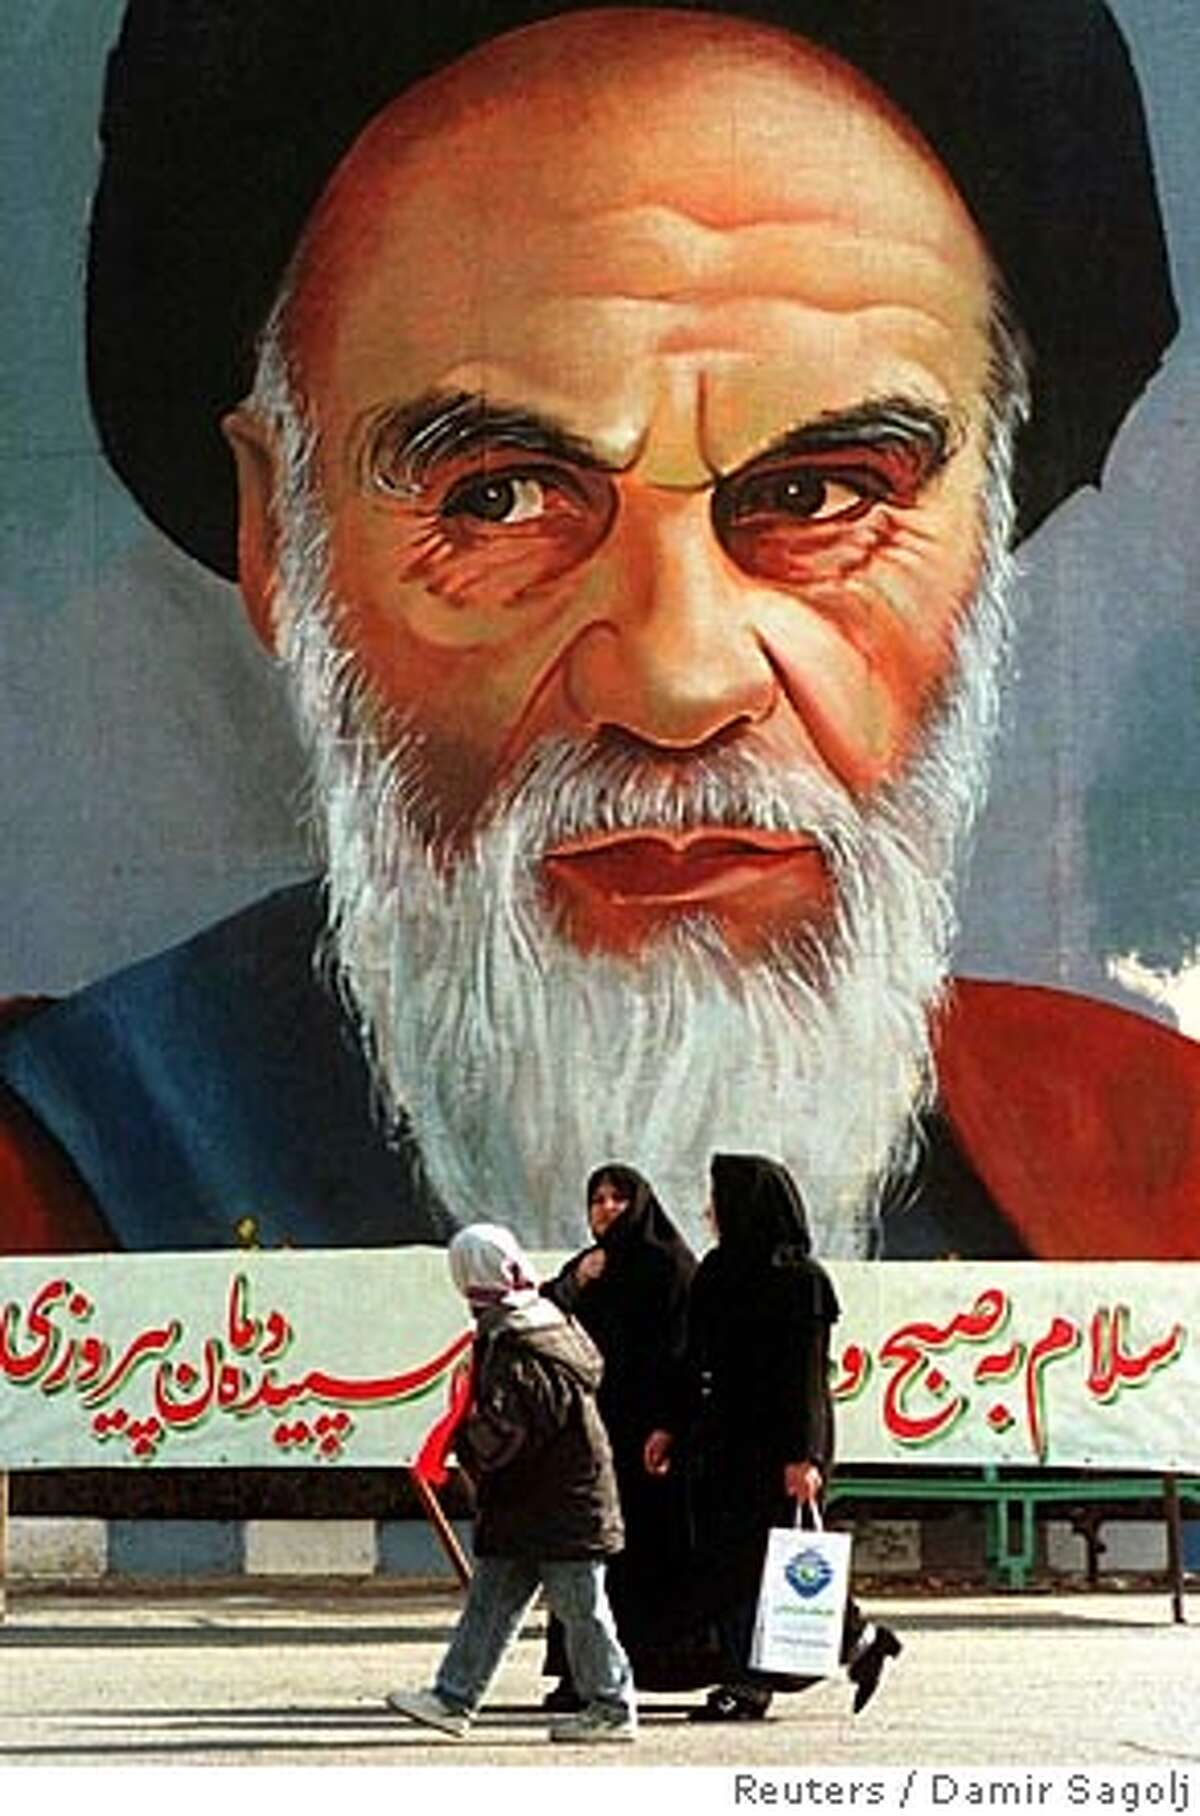 TEH04:IRAN-REVOLUTION:TEHRAN,8FEB99 - Iranian women pass by a billboard showing the late founder of the Islamic revolution Ayatollah Khomeini in the centre of Tehran February 8. Iranians will mark the 20th anniversary of the Islamic revolution next week. ds/Photo by Damir Sagolj REUTERS 9R BookReview#BookReview#Chronicle#04-03-2005#ALL#2star#e1#422008658